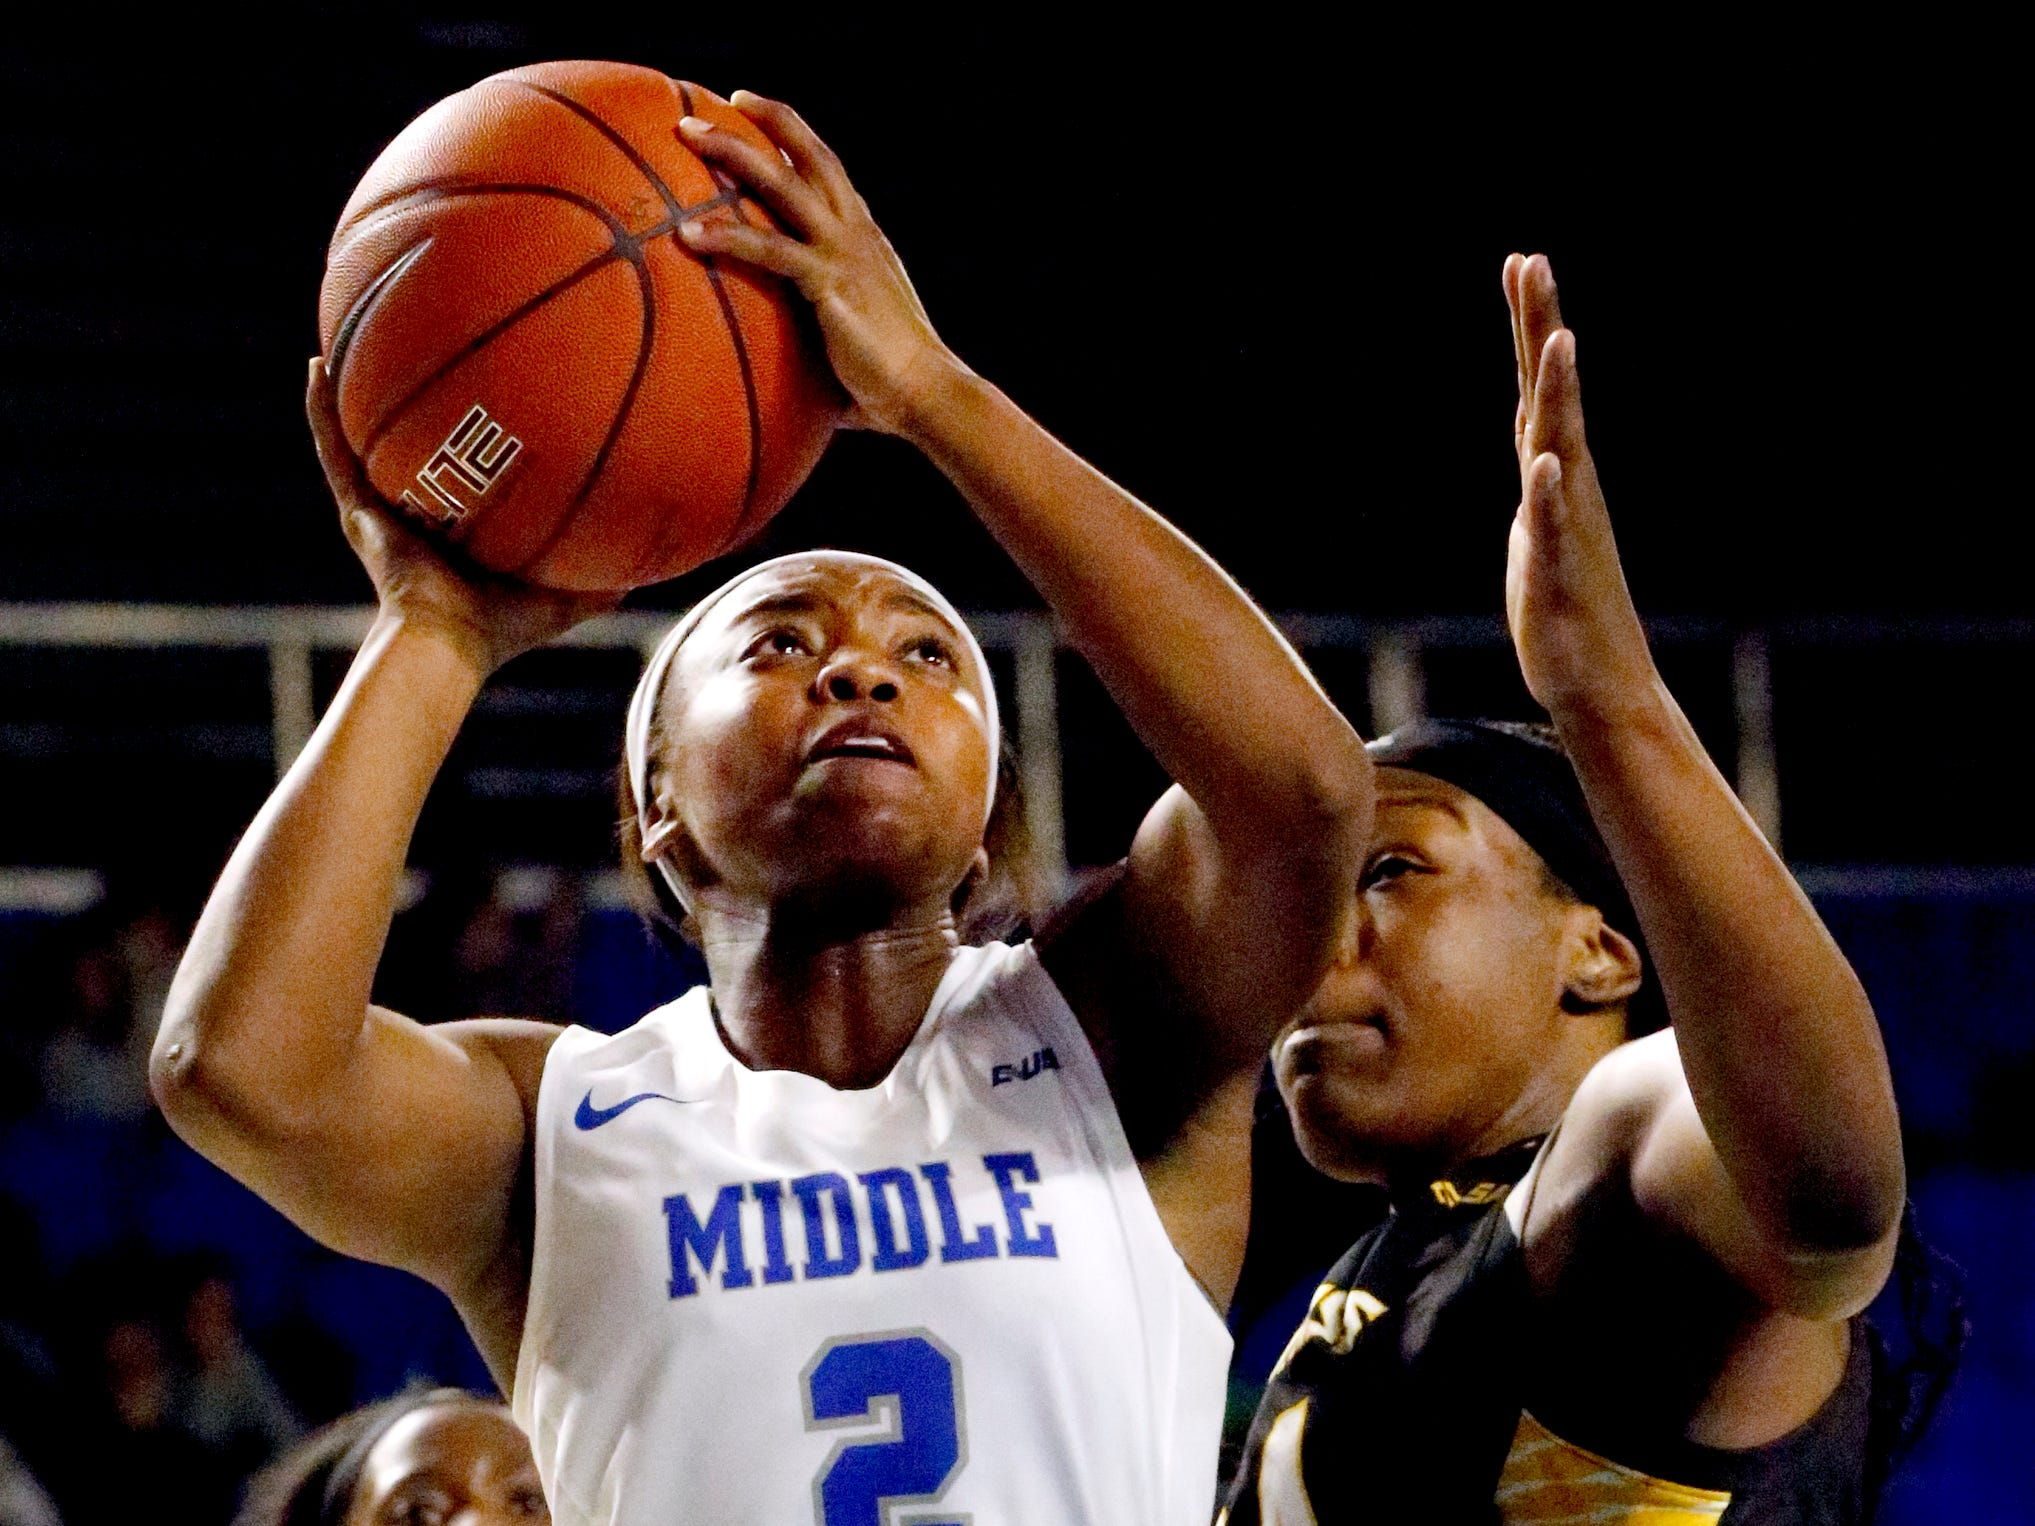 MTSU's guard Taylor Sutton (2) shoots the ball as Southern Miss' Kennedy Gavin (24) guards her on Thursday Jan. 10, 2019.